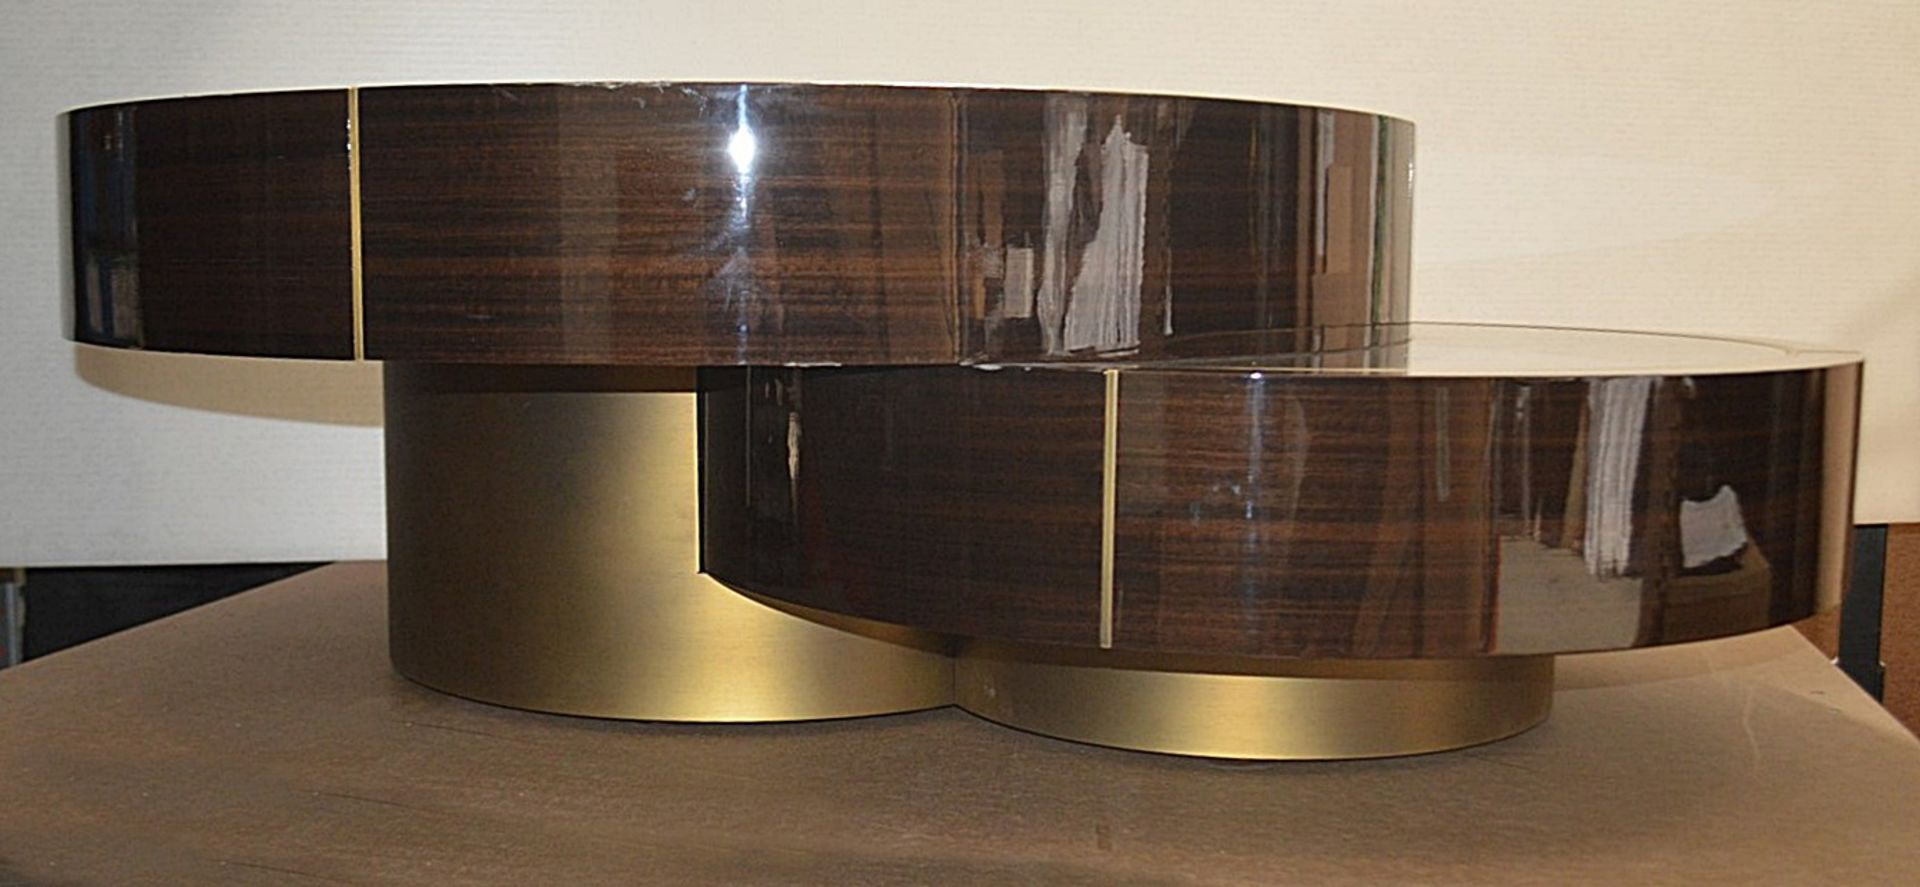 1 x FRATO 'Aarhus' Luxury Coffee Table Topped With Marble With High Gloss Finish - RRP £6,611 - Image 5 of 9